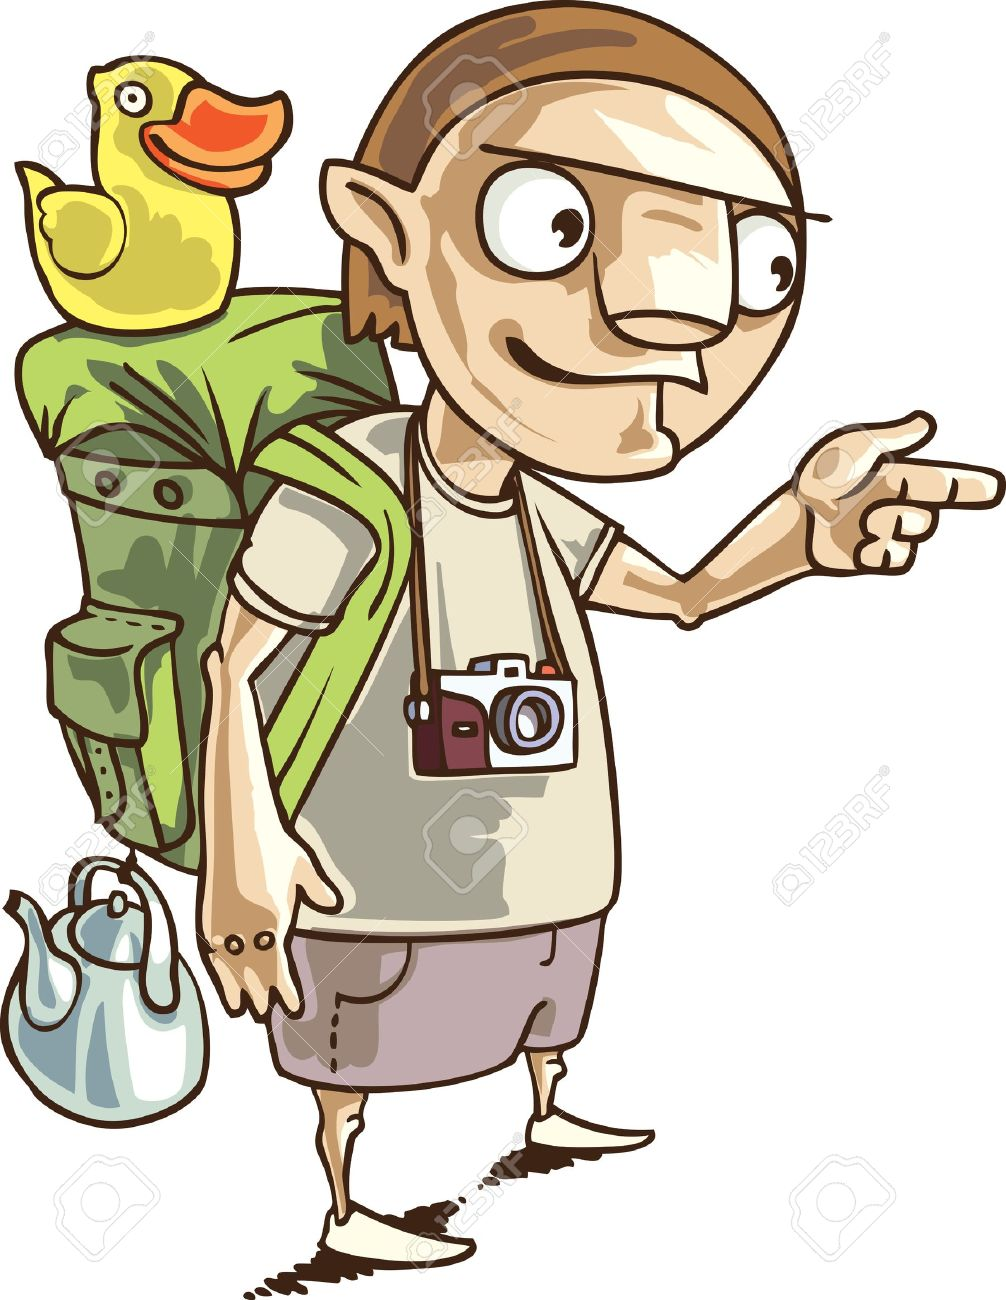 The backpacker with the all staff he needs in his journey. Stock Vector - 10222426